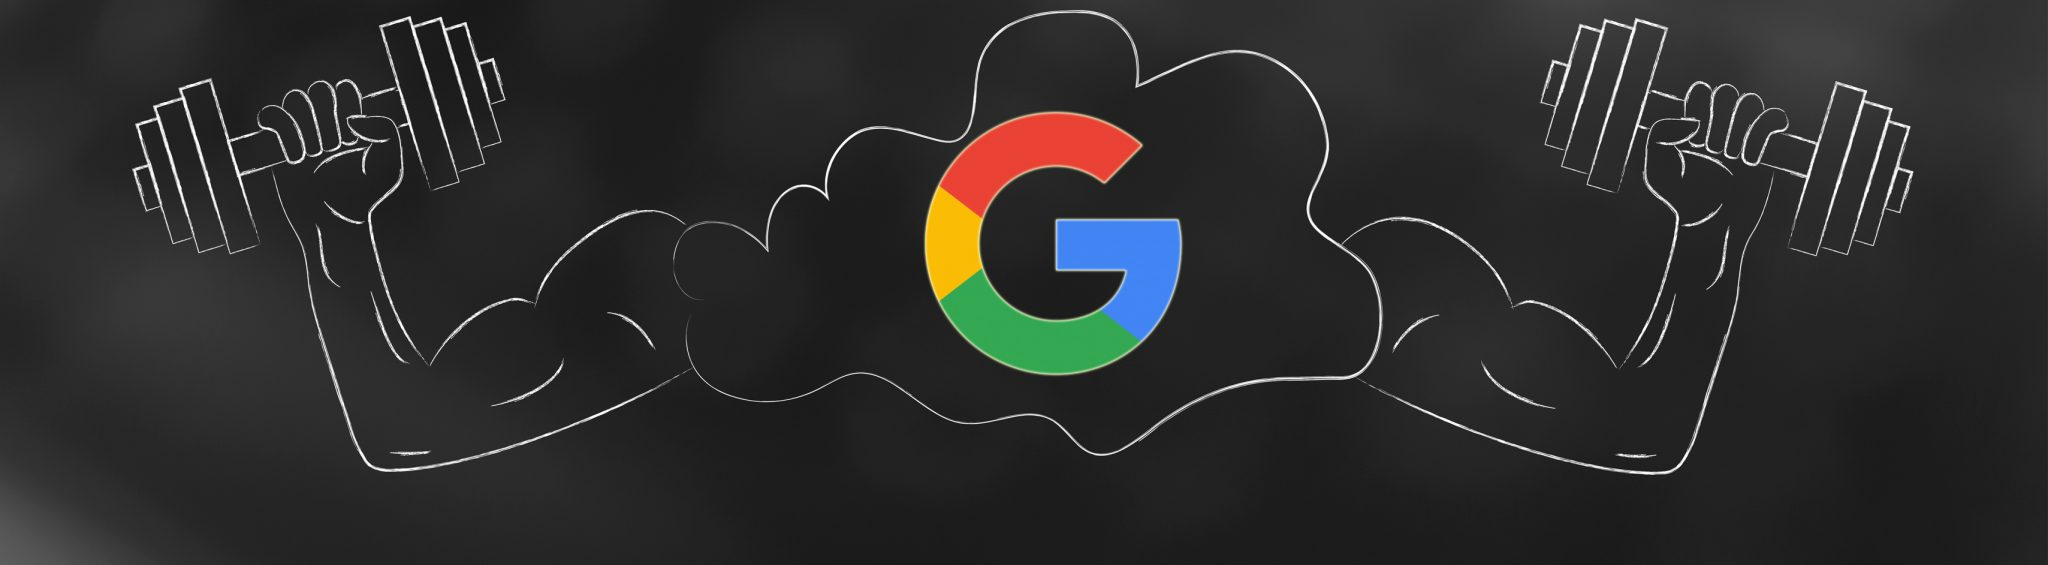 Google Cloud Platform flexes its muscles in aggressive push for